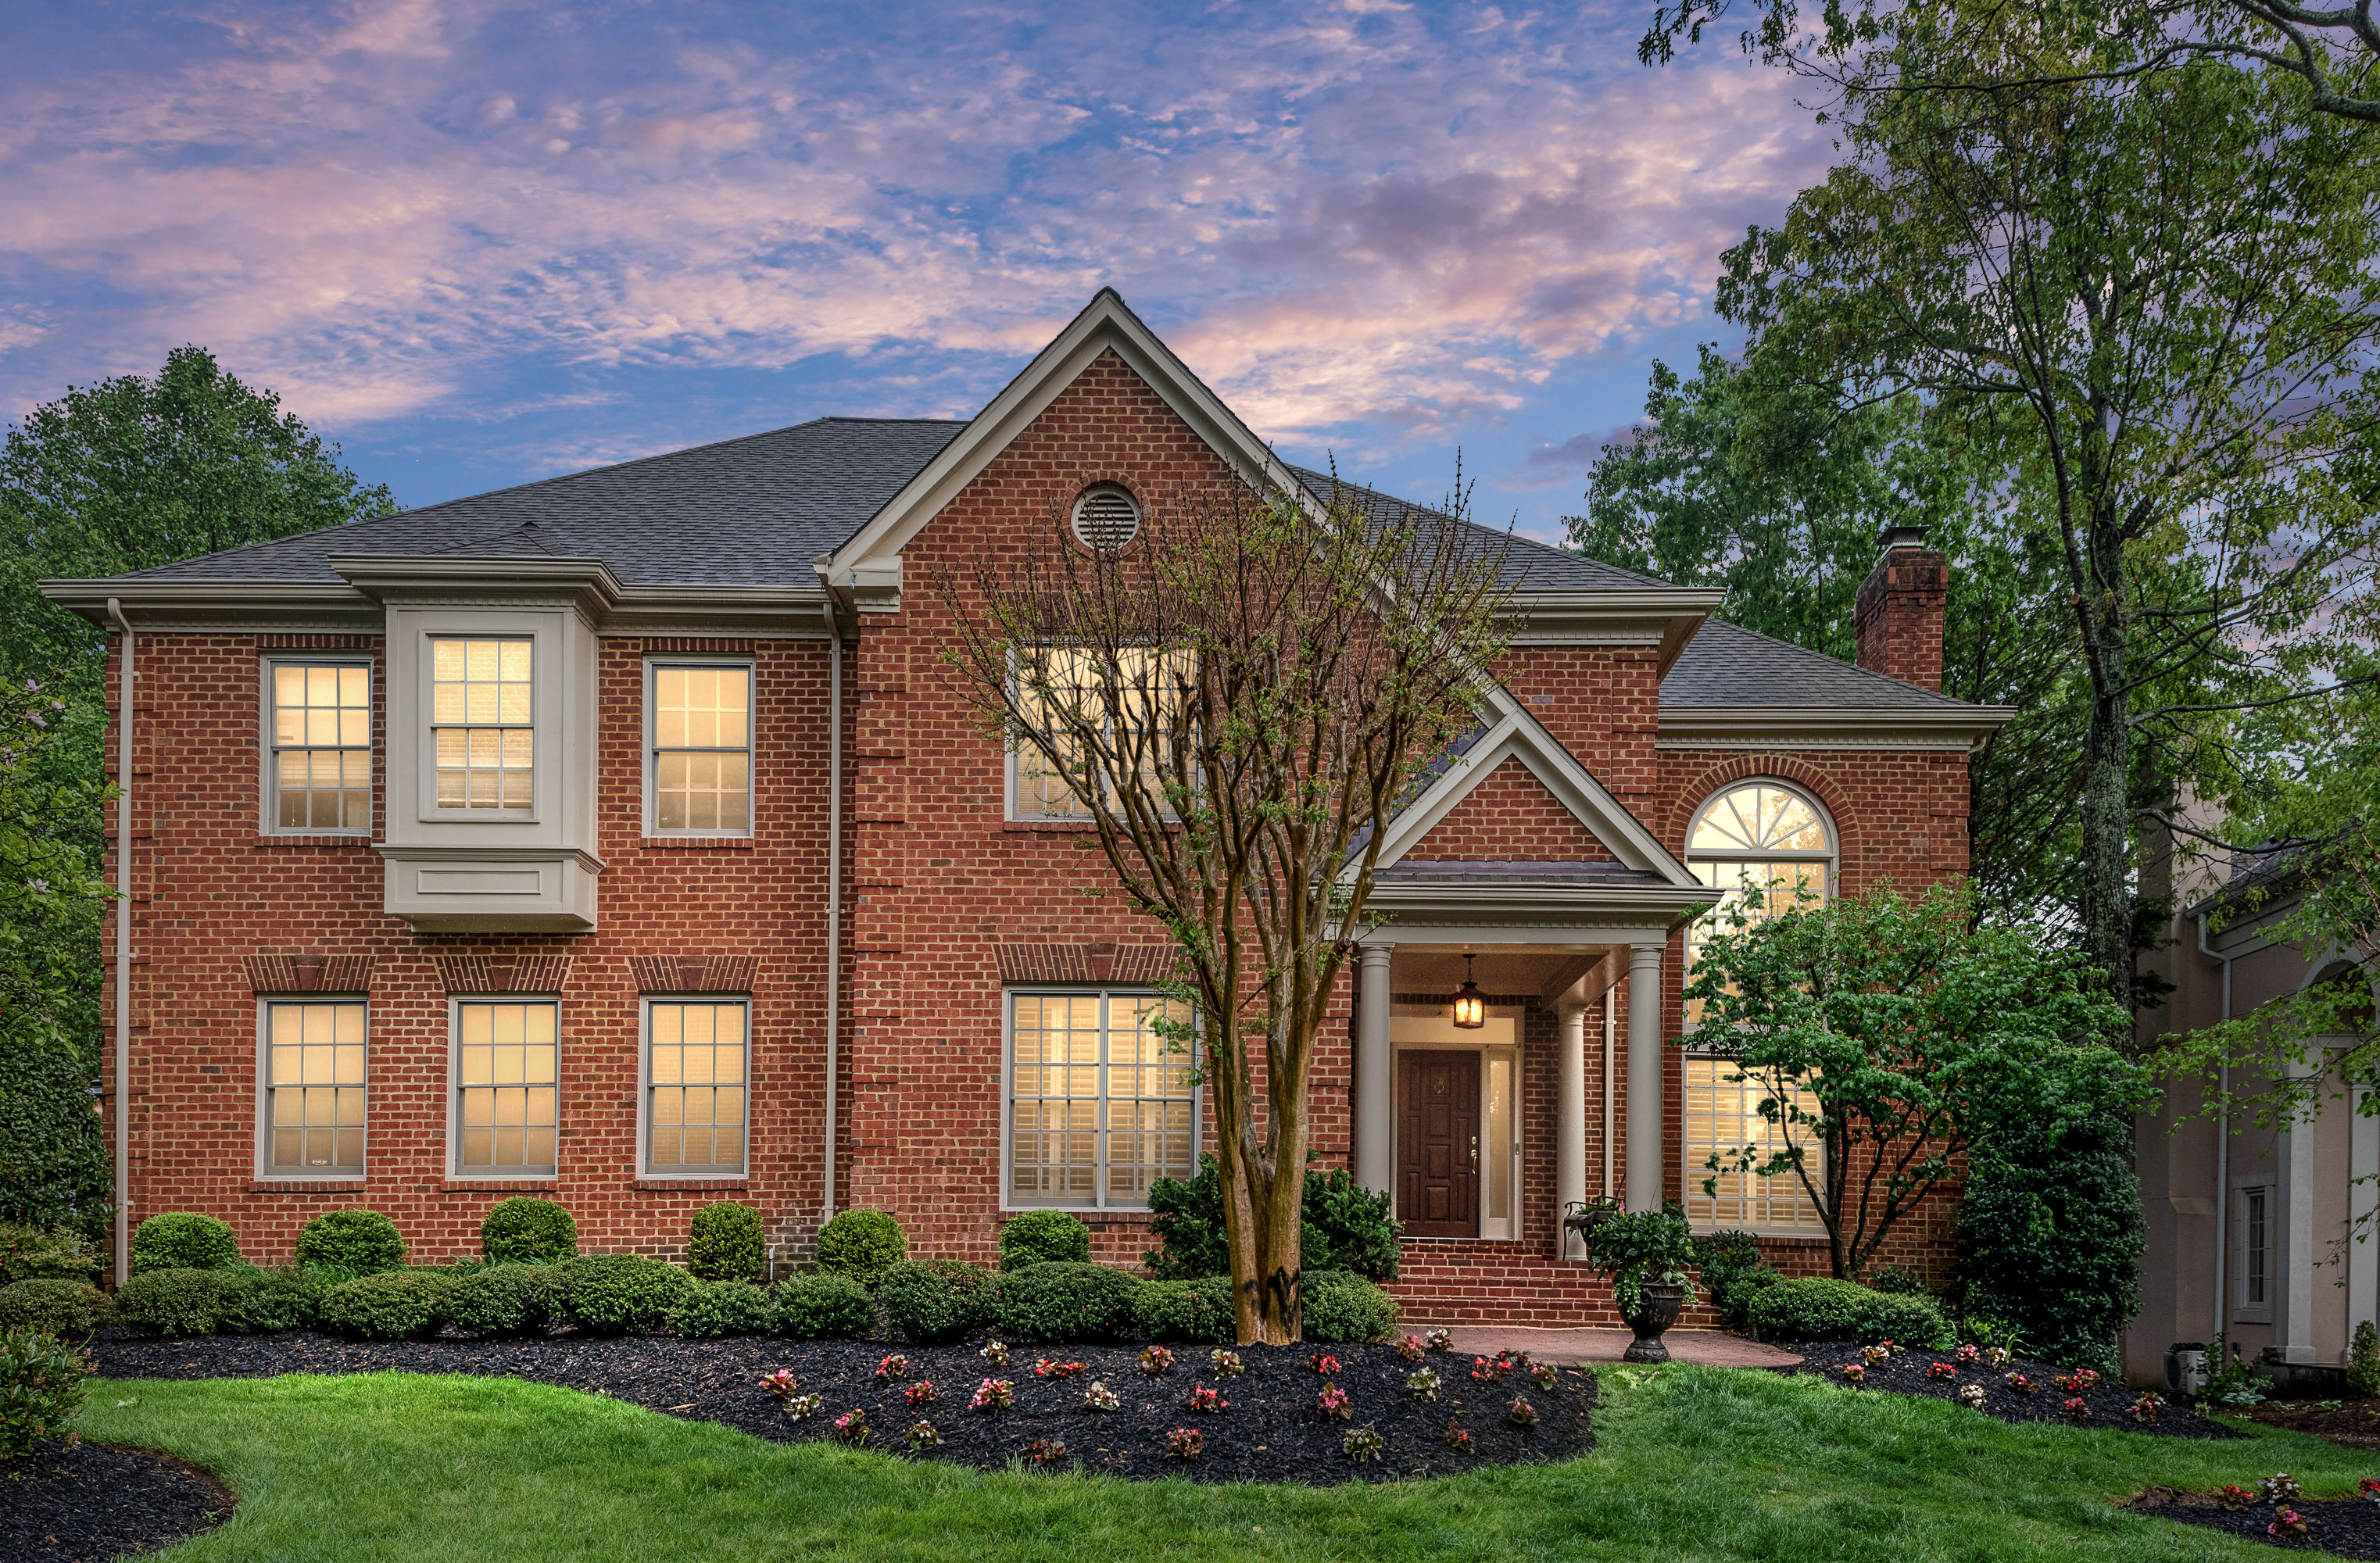 8085 Crooked Oaks Ct   Gainesville